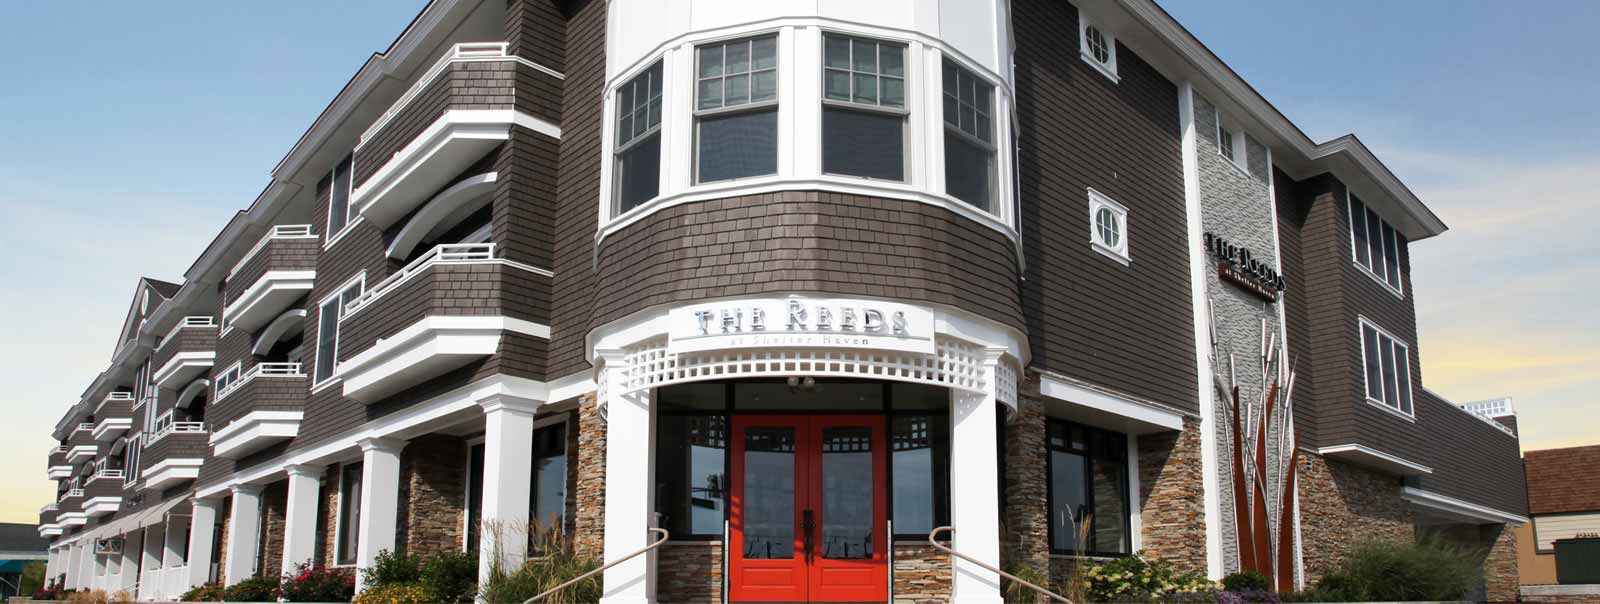 Where to Stay in Stone Harbor